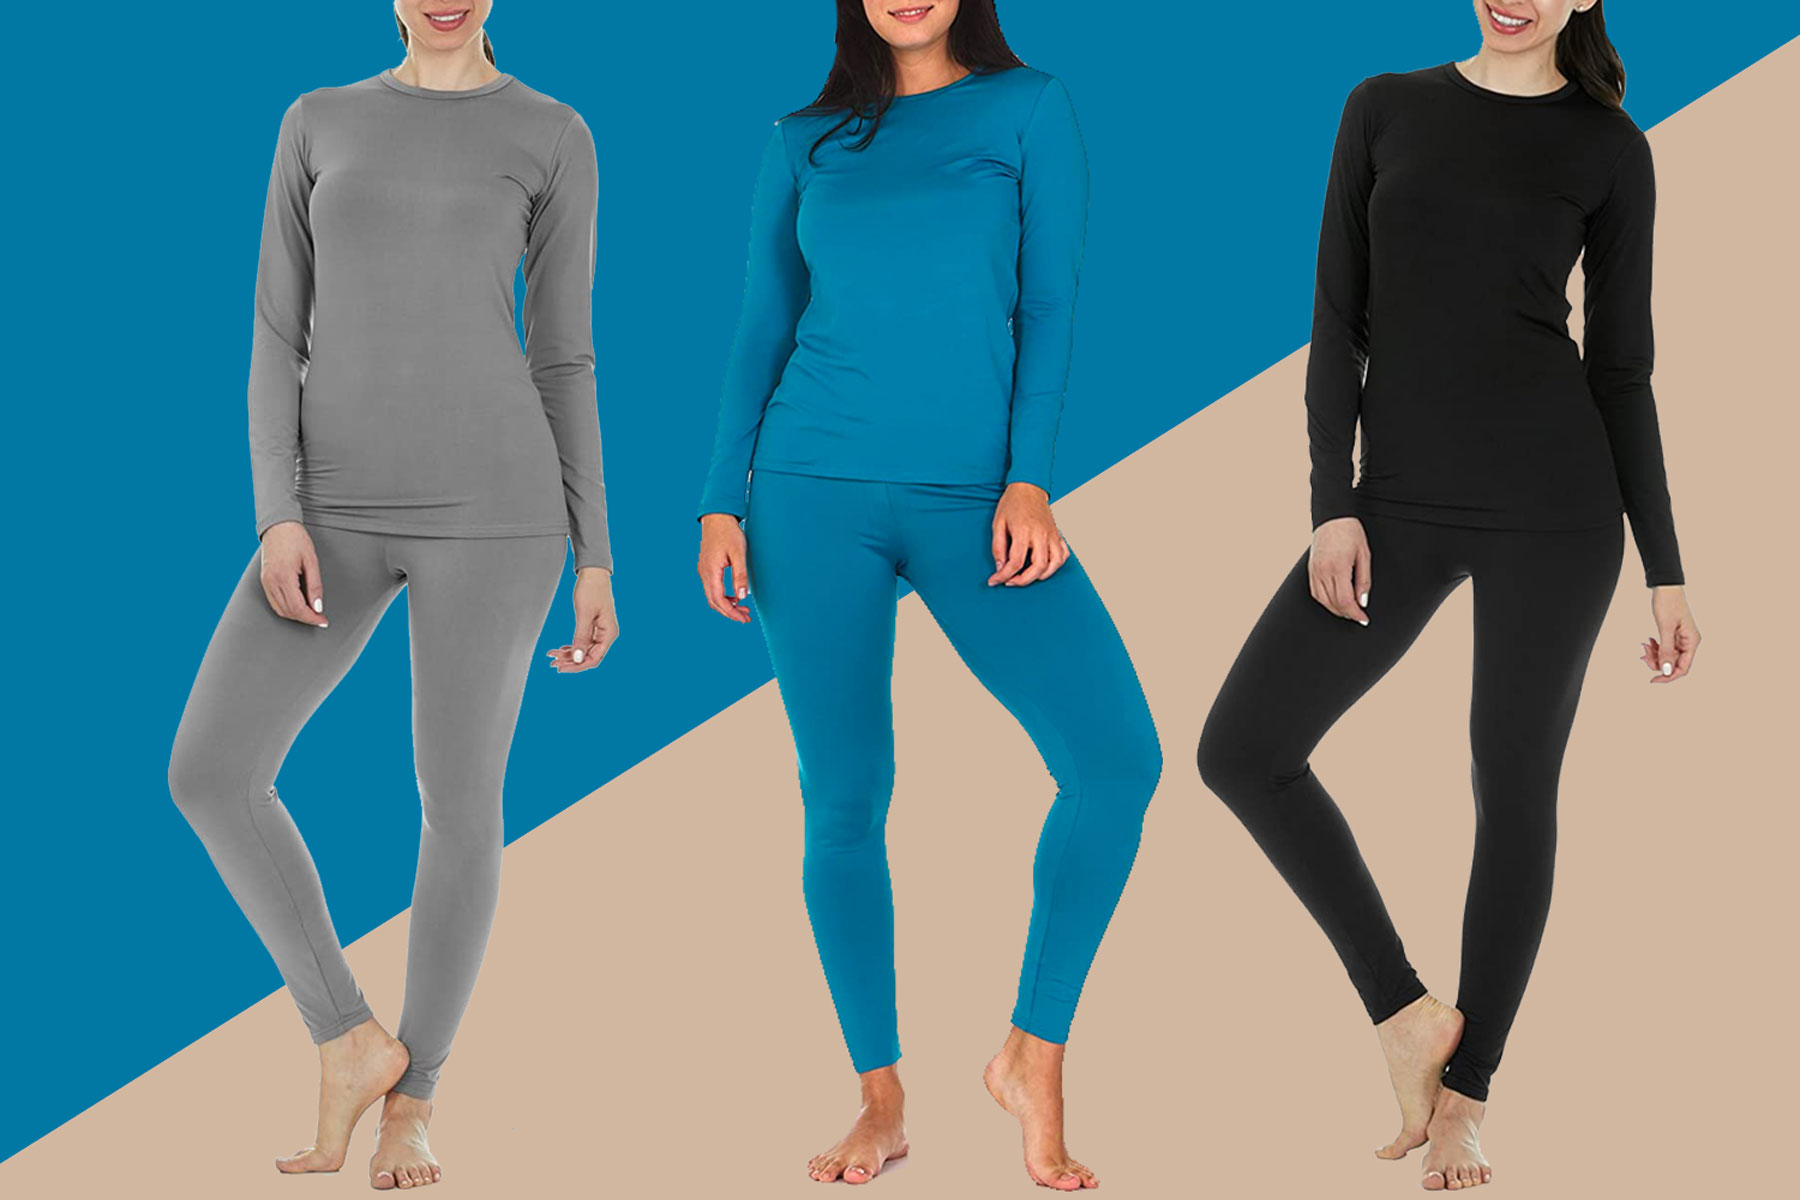 Women wearing black, grey, and blue thermal sets